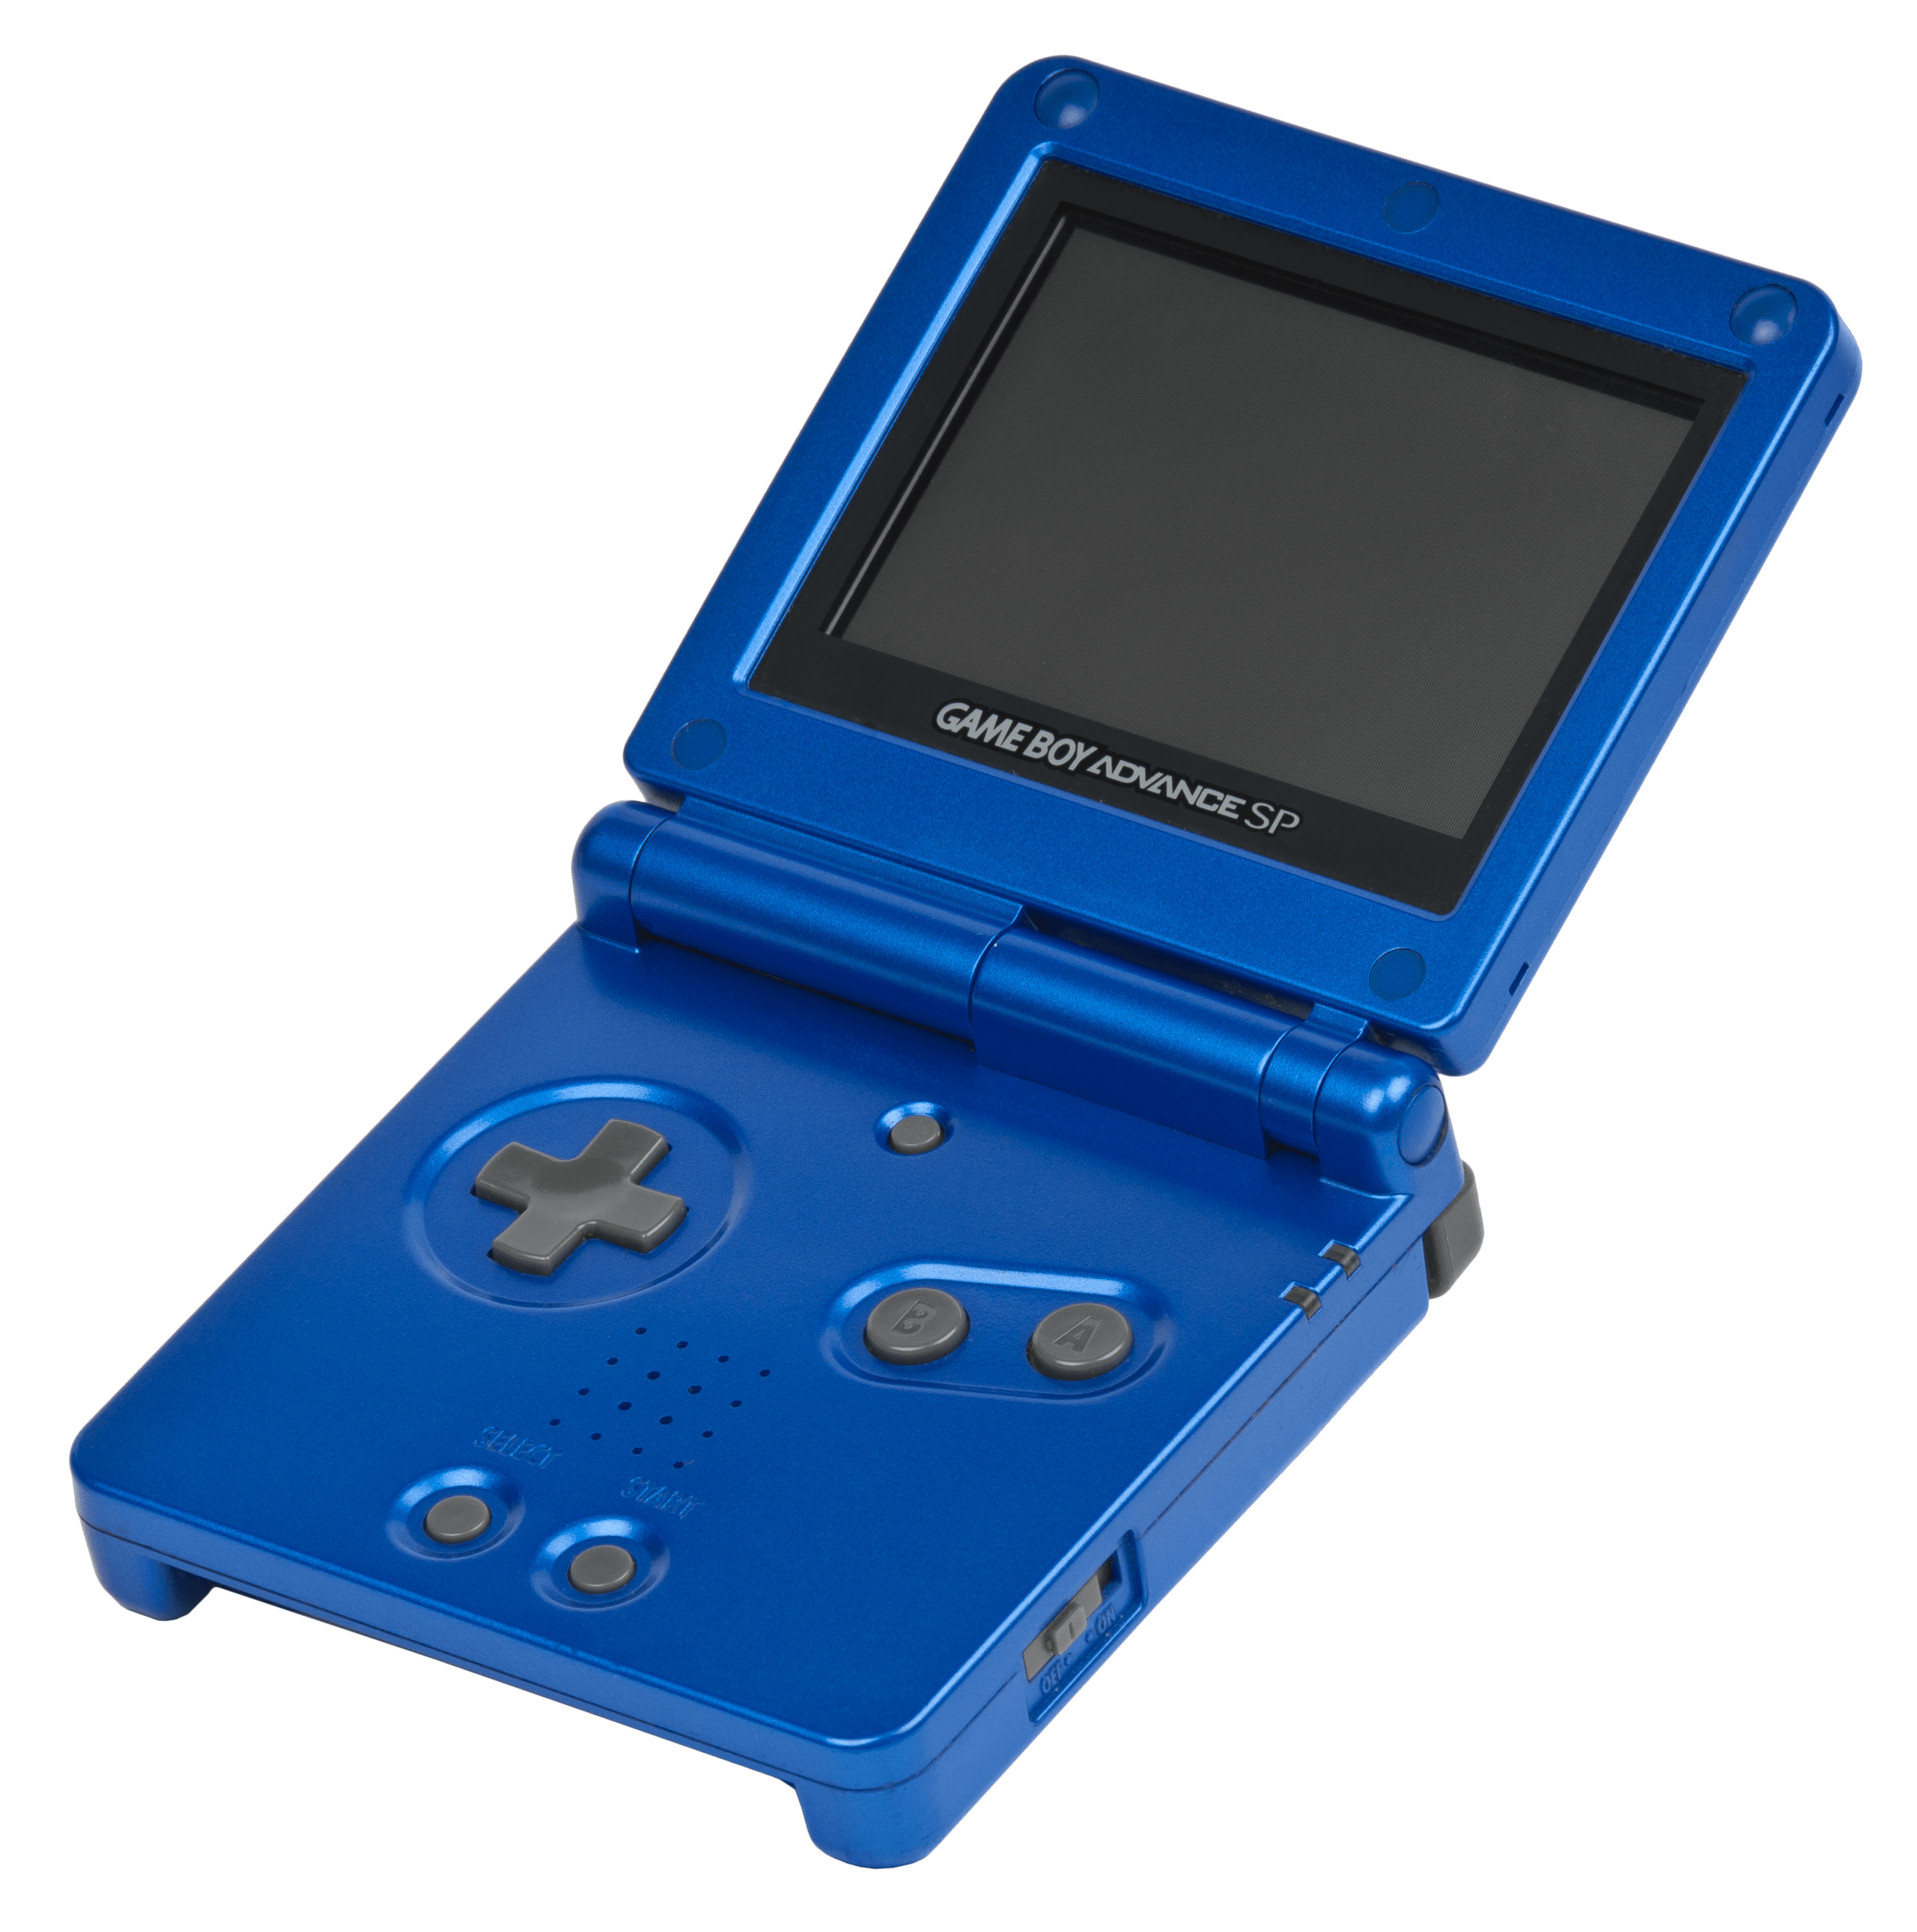 Nintendo gameboy advance png. Game boy sp transparent